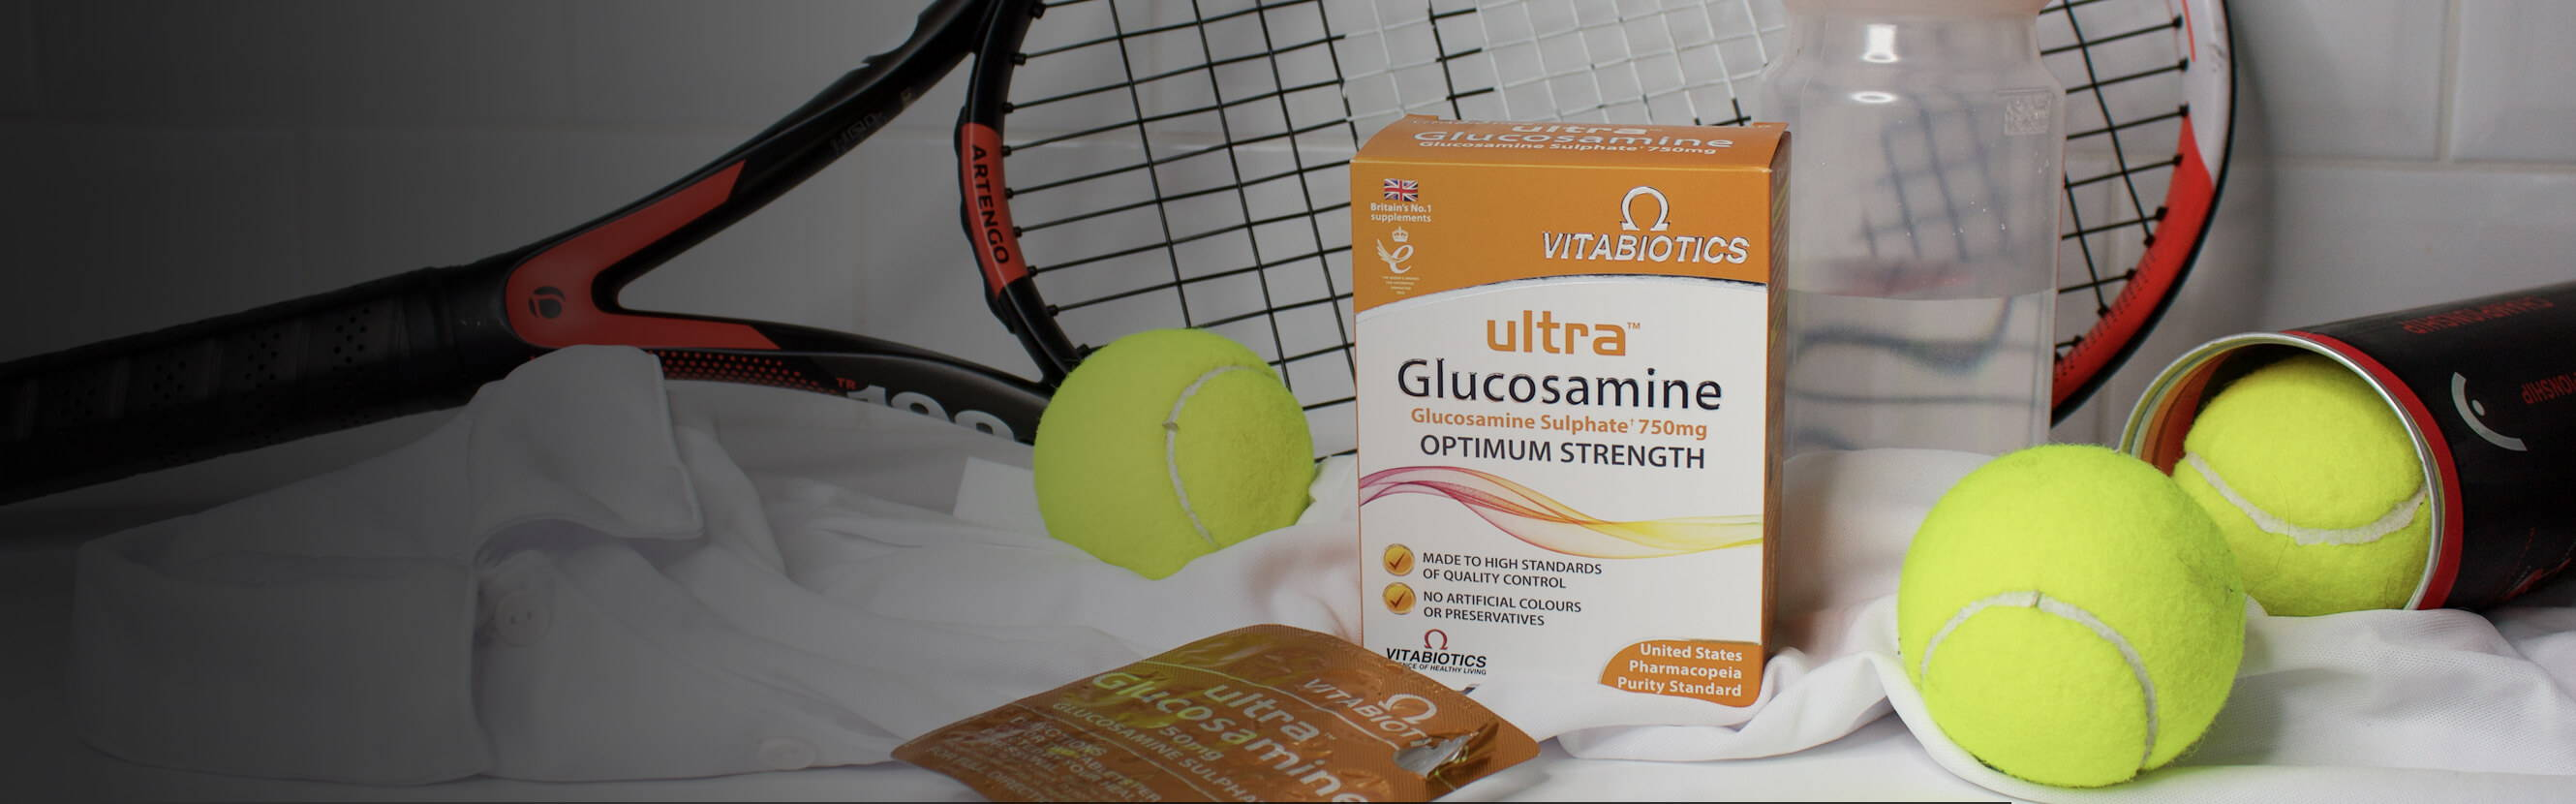 When you're using Glucosamine supplement, pay special attention to the form it comes in. Unlike sodium forms, the Glucosamine in Ultra Glucosamine is in potassium form, the one that's preferred for improved absorption.